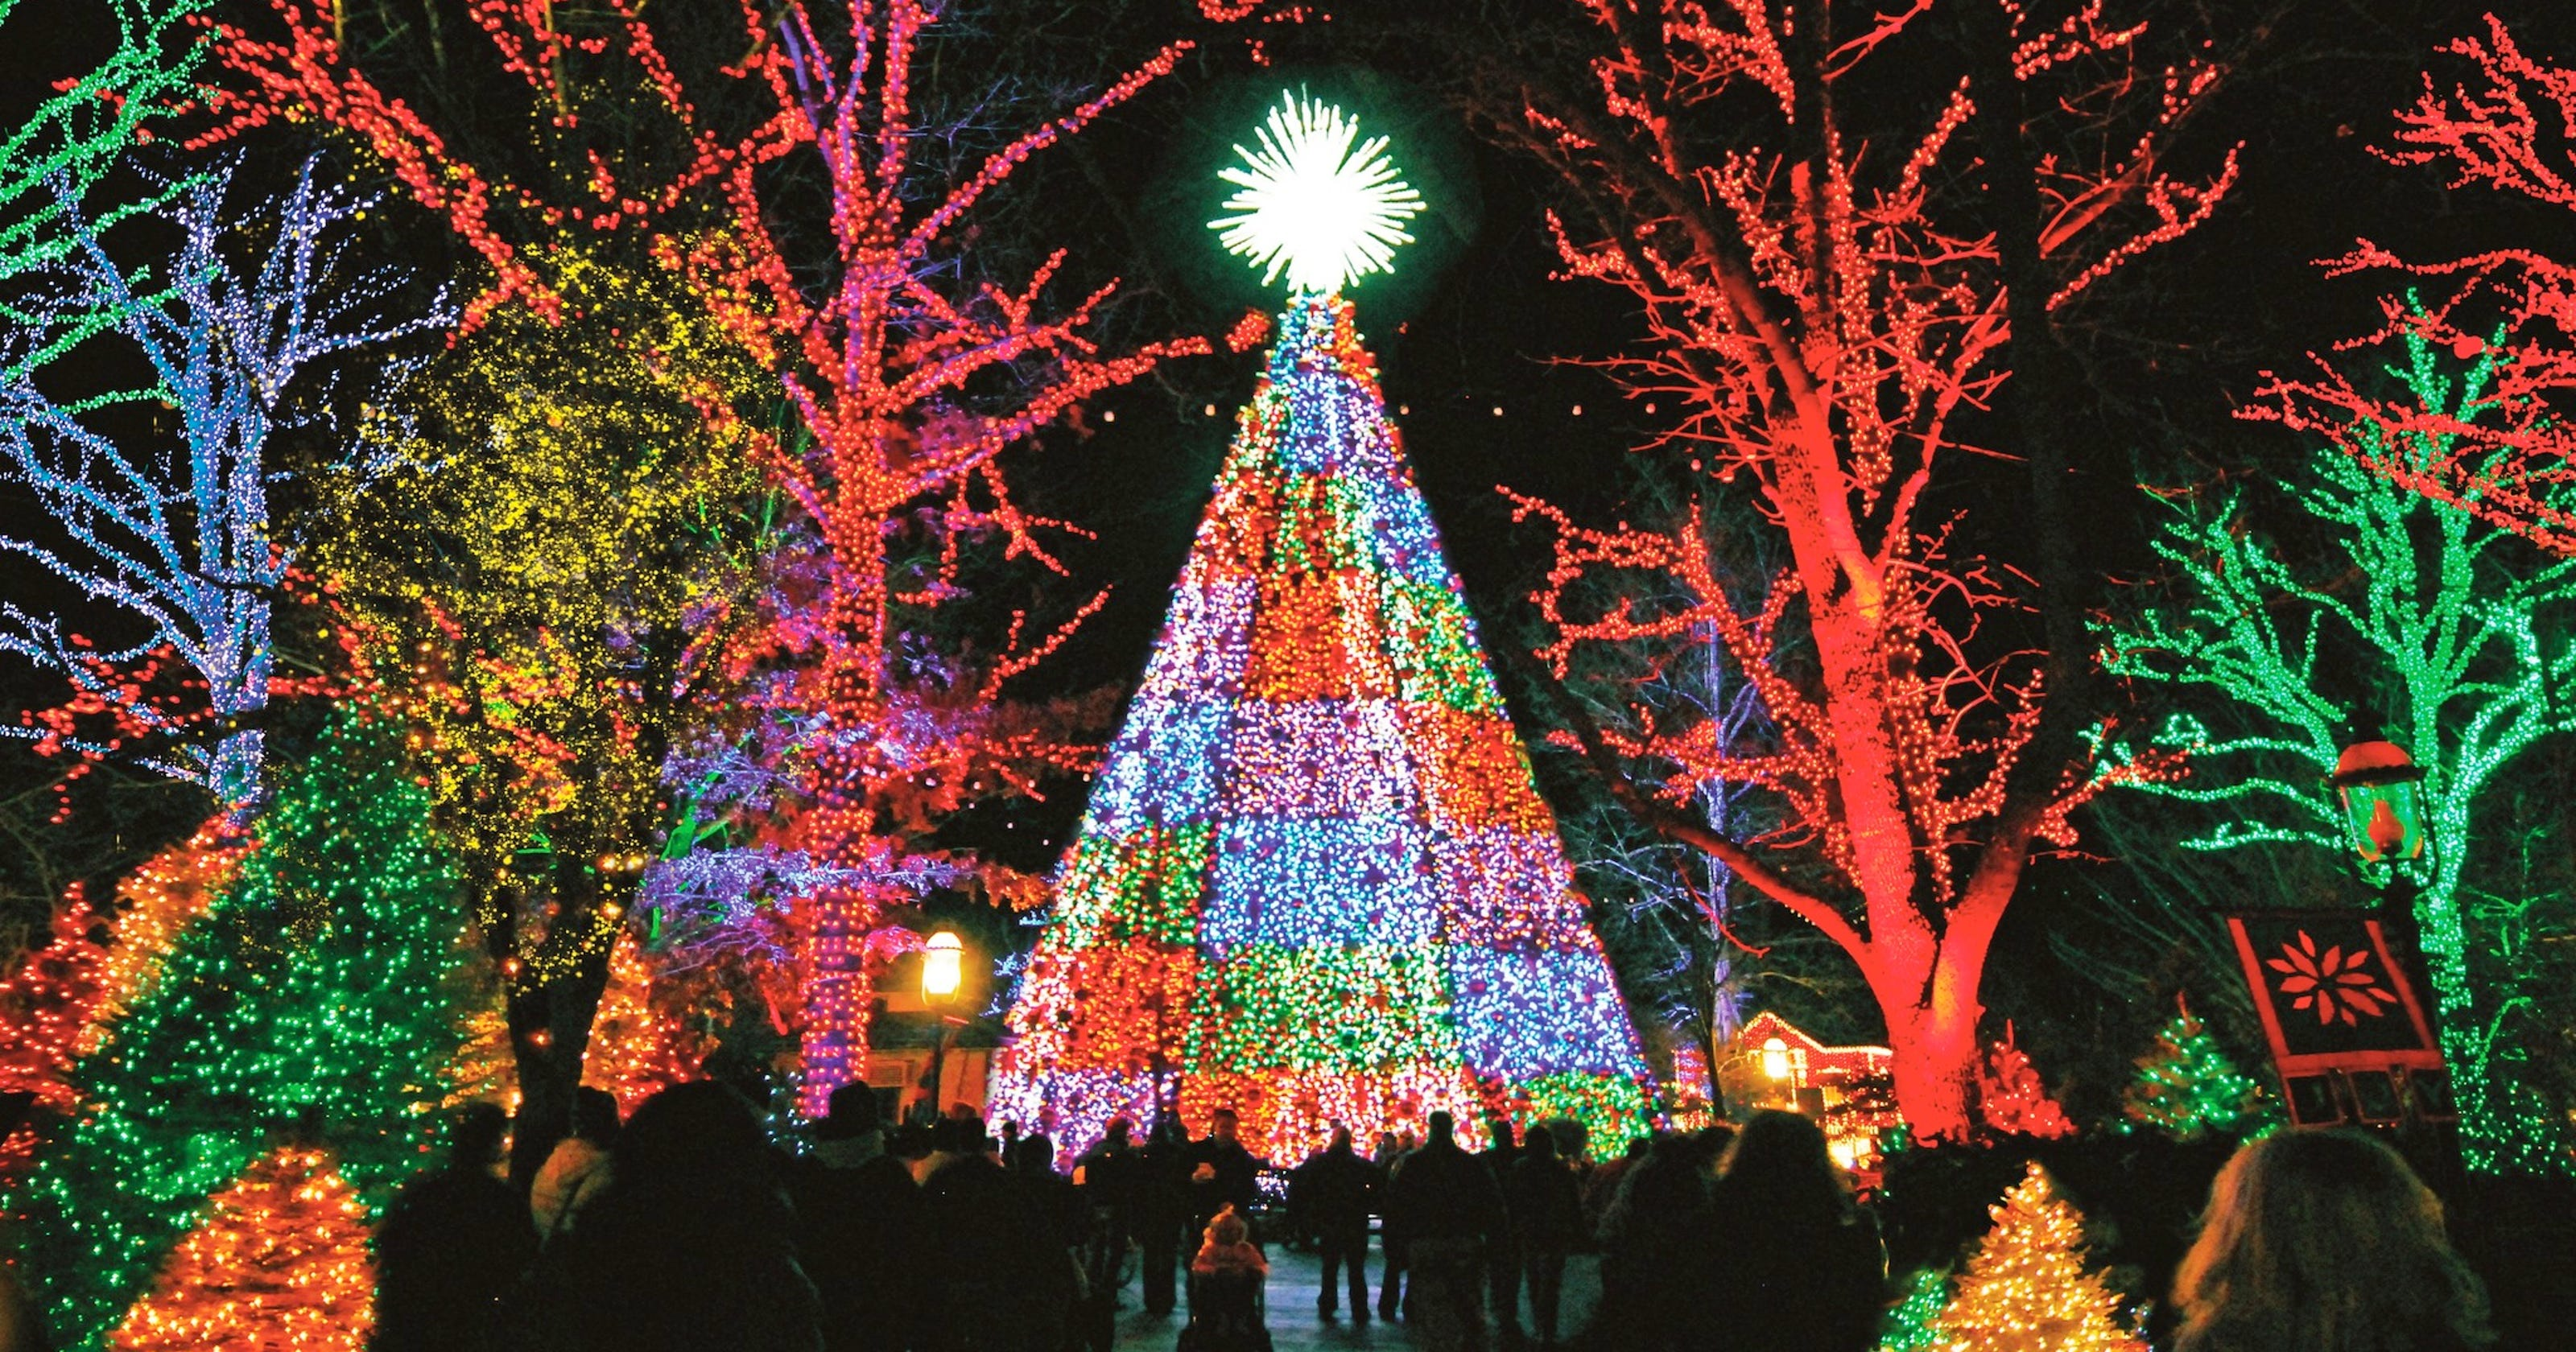 dominion garden of lights is brought to you by the following ...